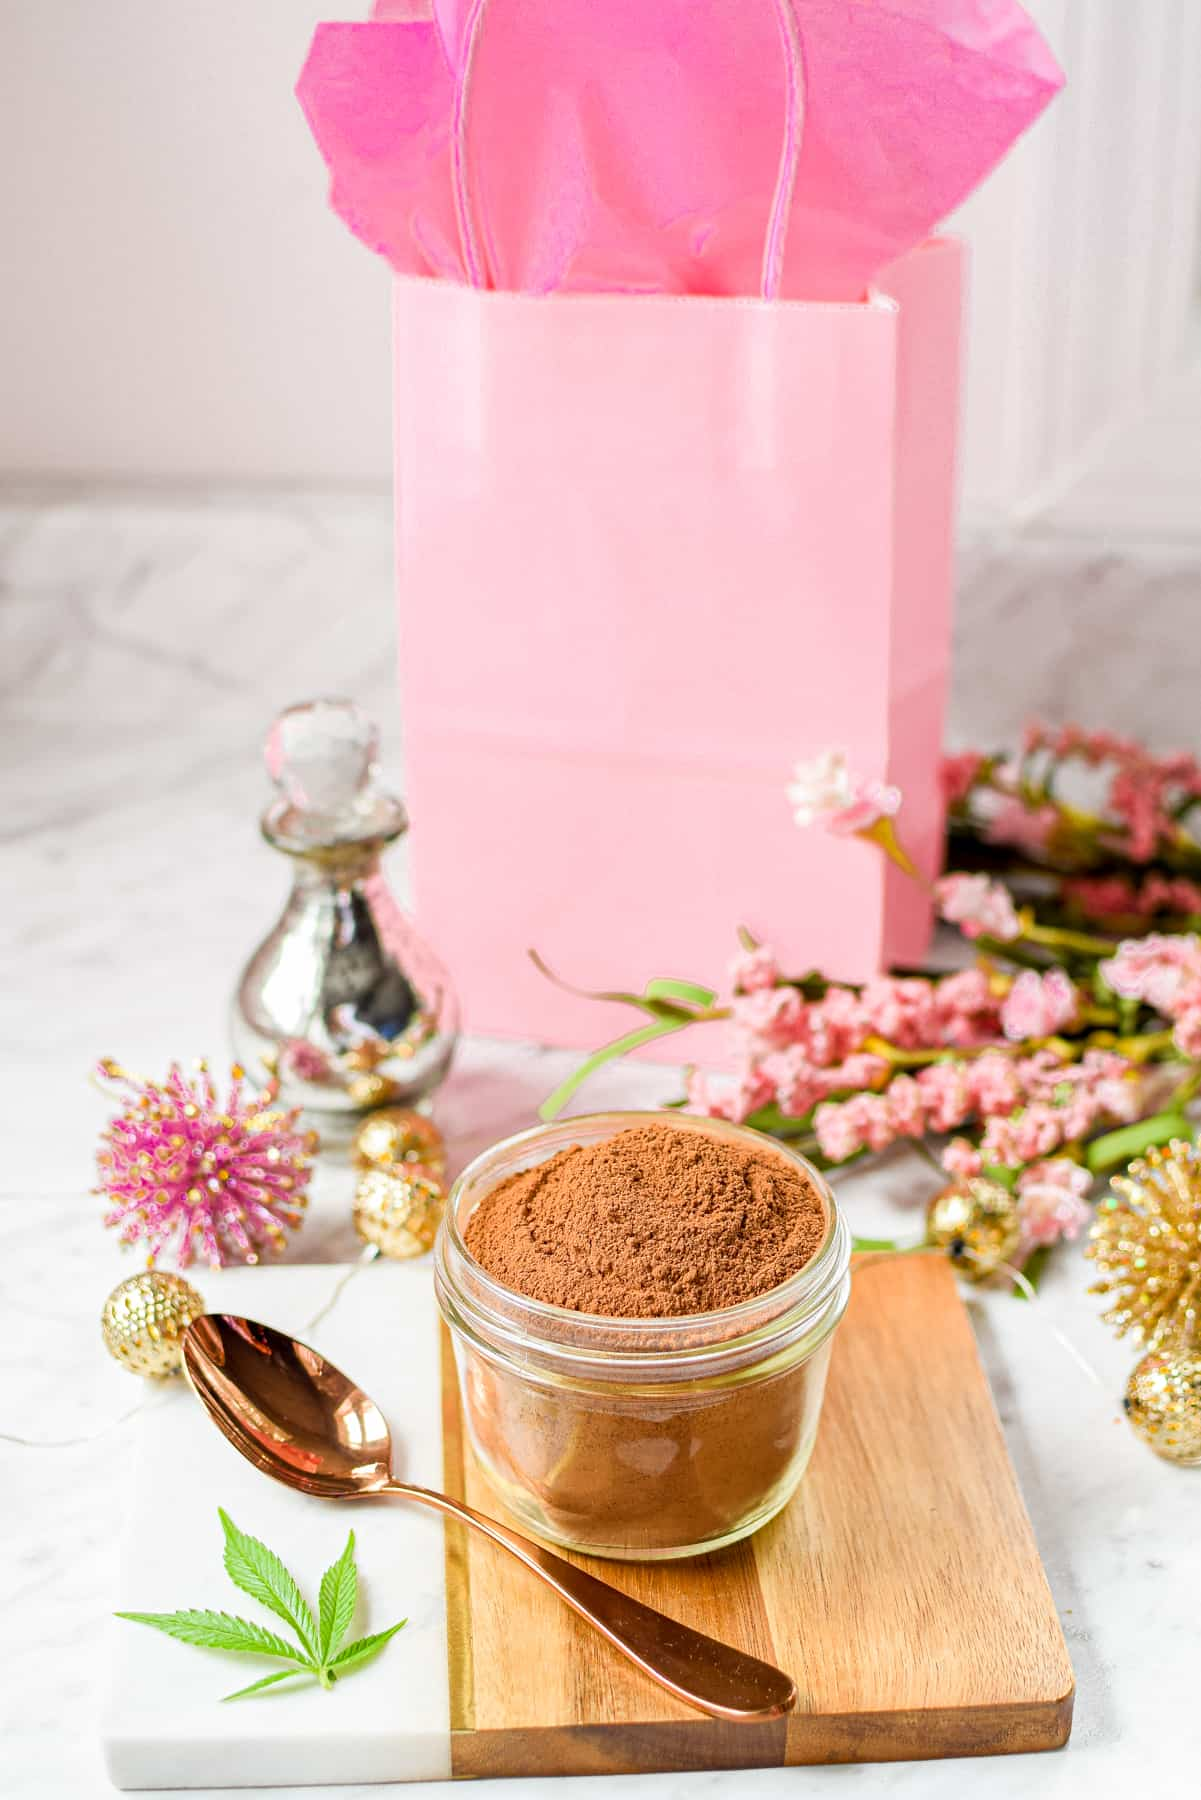 A white countertop with a cutting board topped with a glass mason jar filled with hot cocoa, with a pink gift back in the back of the photo.